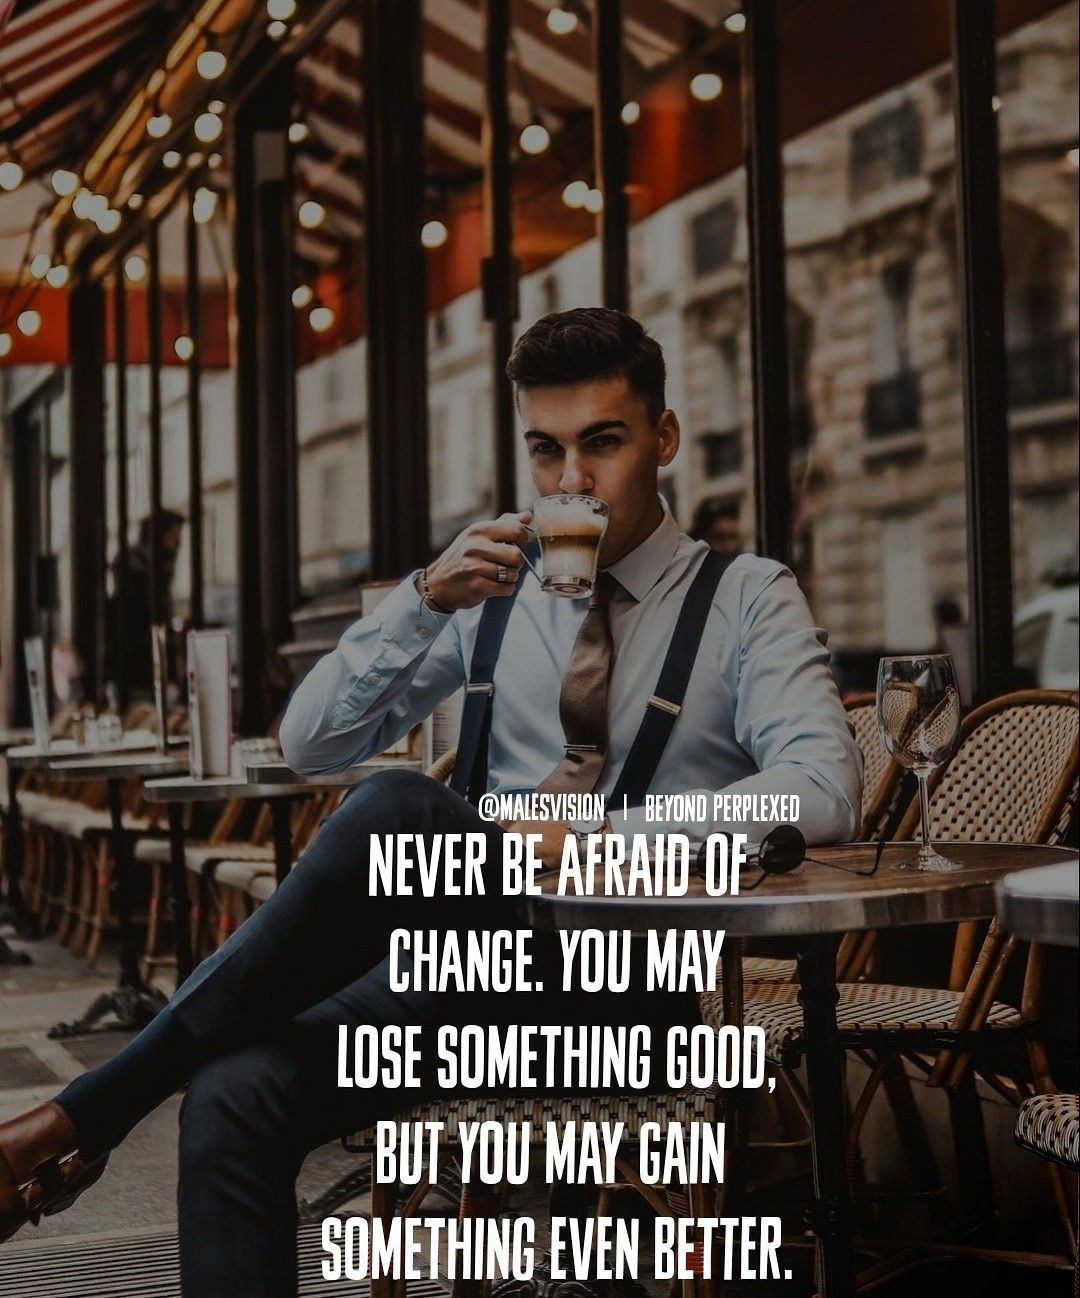 Malesvision For More Malesvision Motivation Inspiration Dailyquotes Quotes Life Super Quotes Inspirational Quotes Motivational Quotes